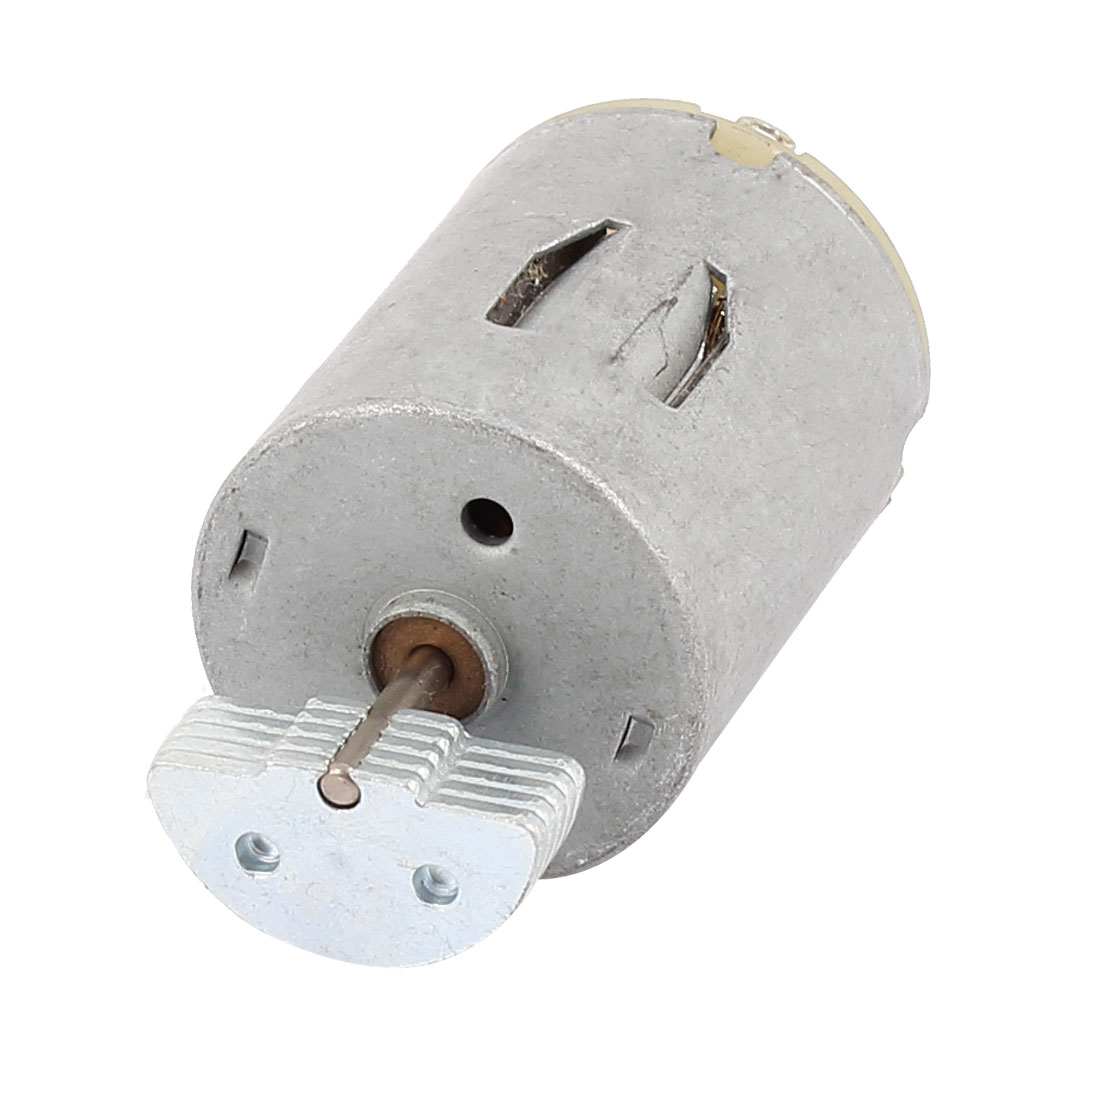 DC 12V 3800RPM Rotary Speed 24mm Dia Electric Vibration Motor 280